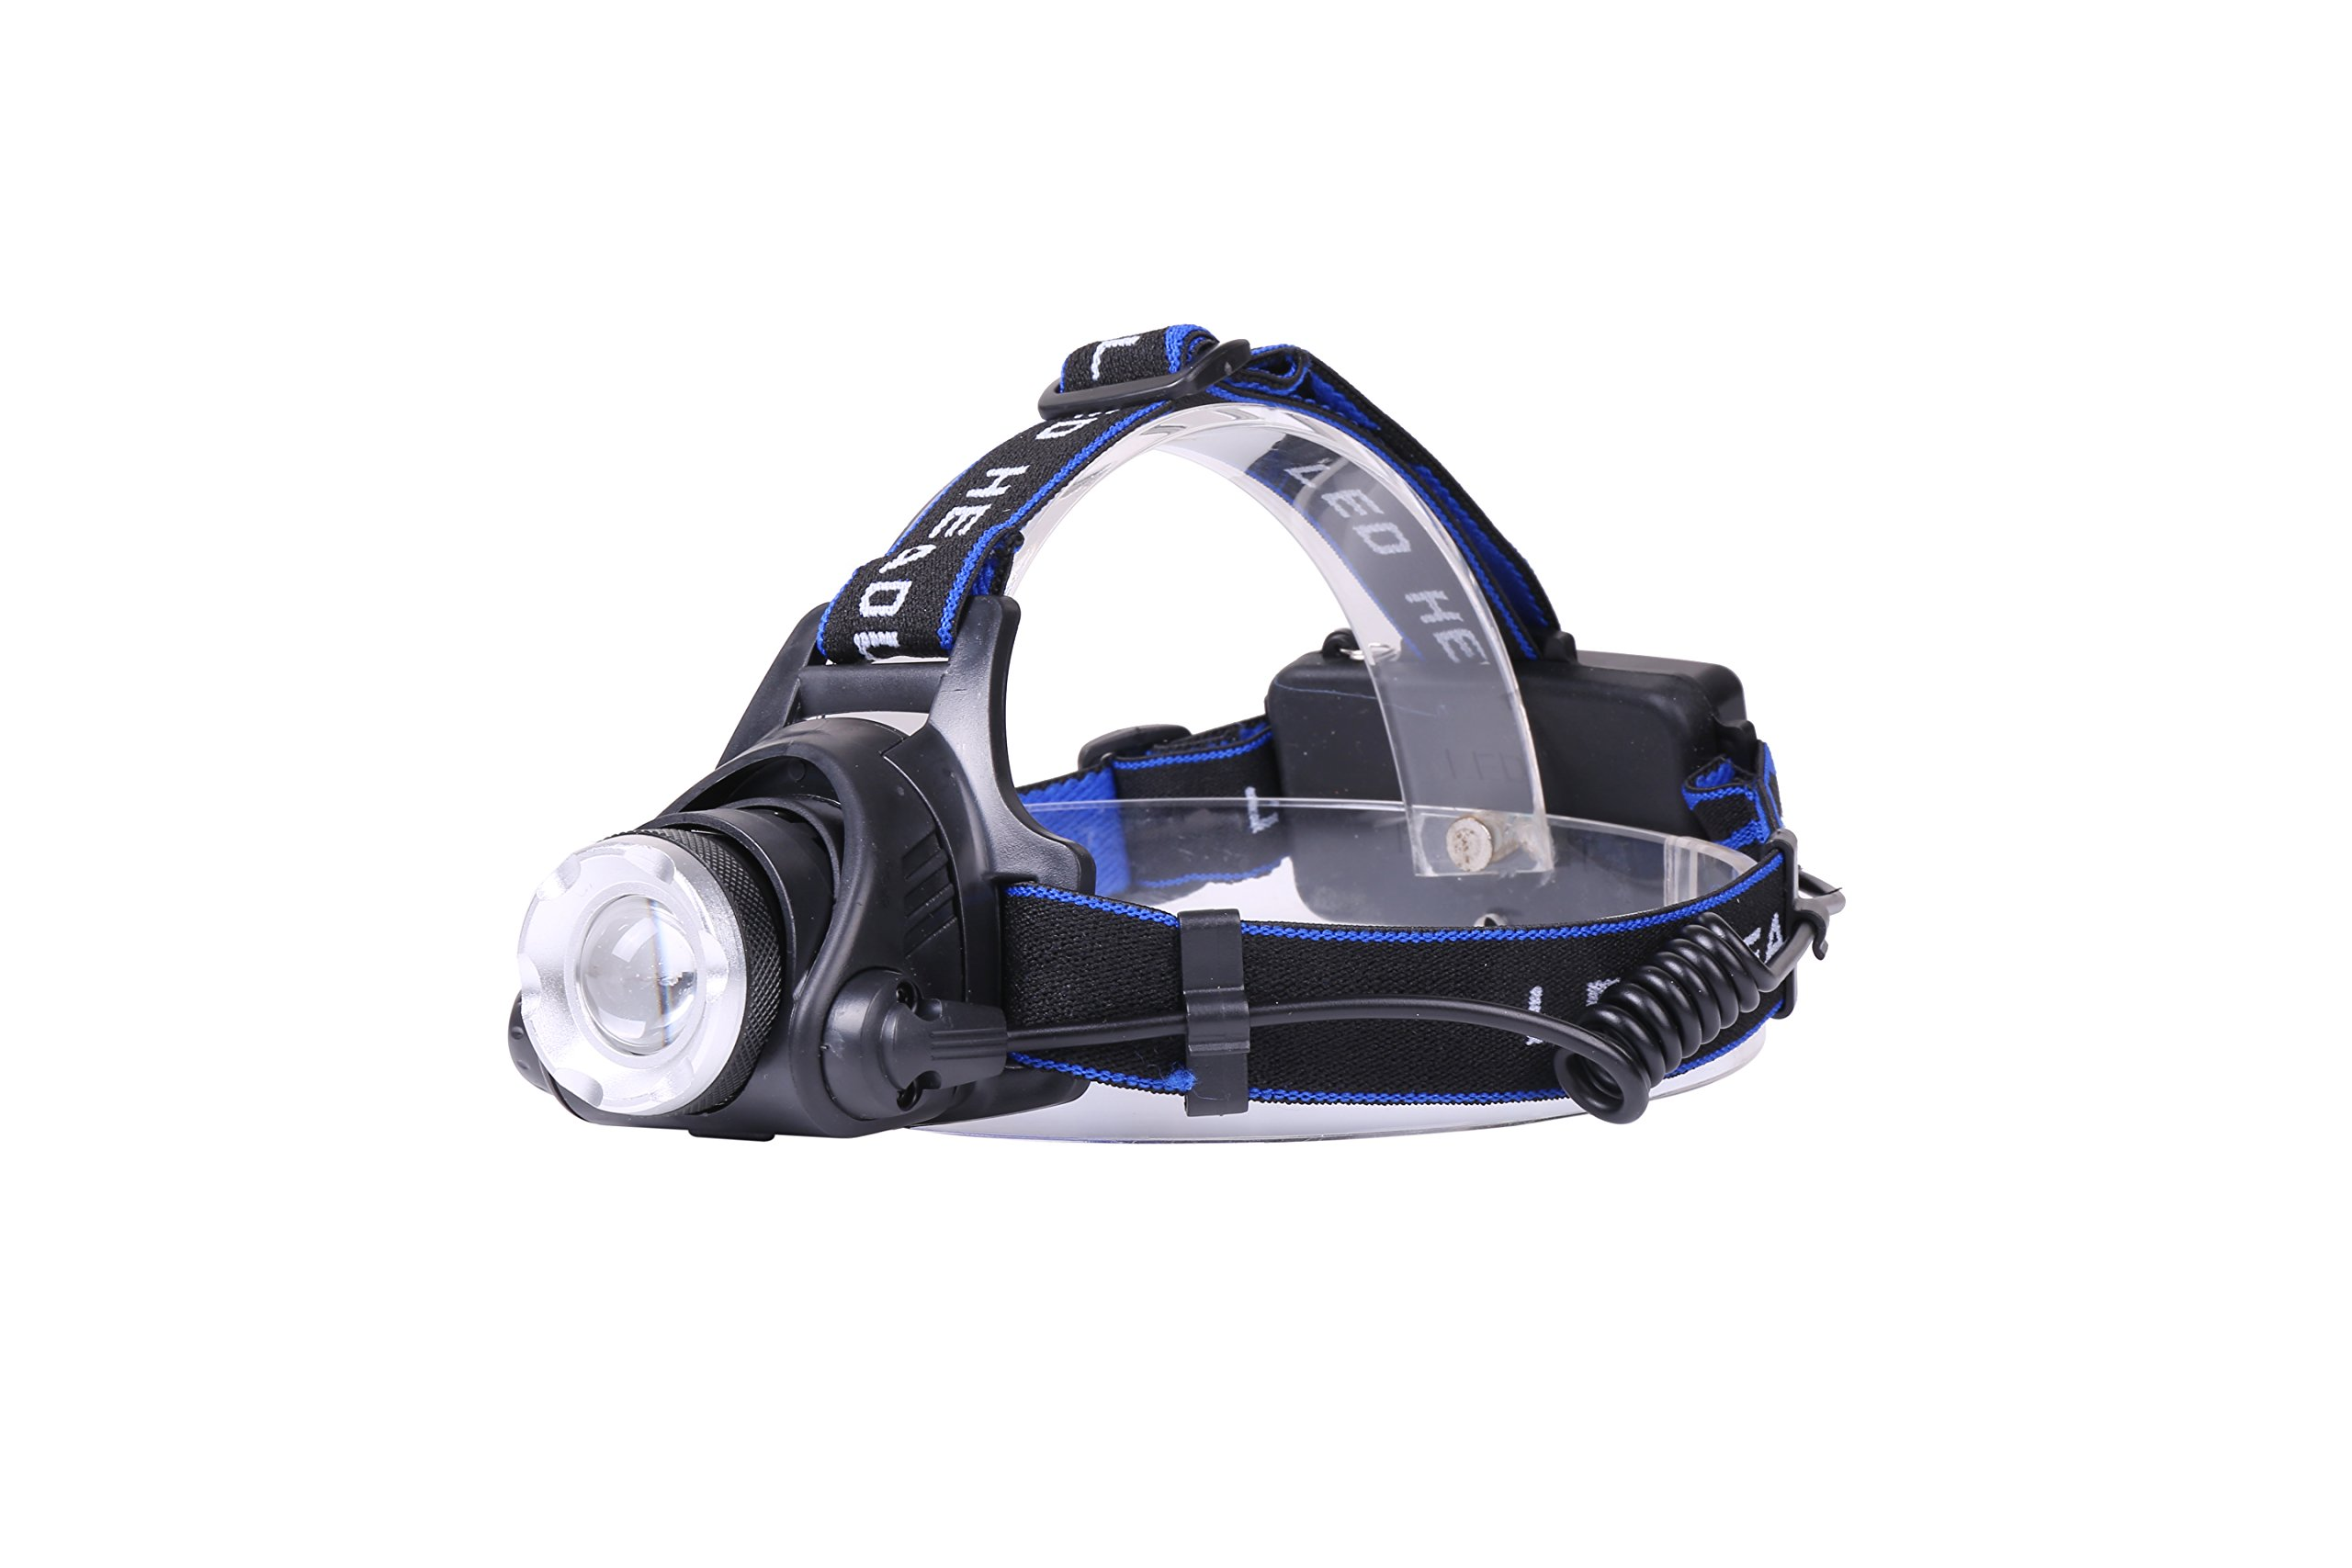 Zoomable LED Headlamp By Limitless: Rechargeable Head Lamp For Night Walks & Runs, Hiking, Camping & Hunting – Waterproof Super Bright Headlight With 3 Light Modes, Adjustable Angle & Headband